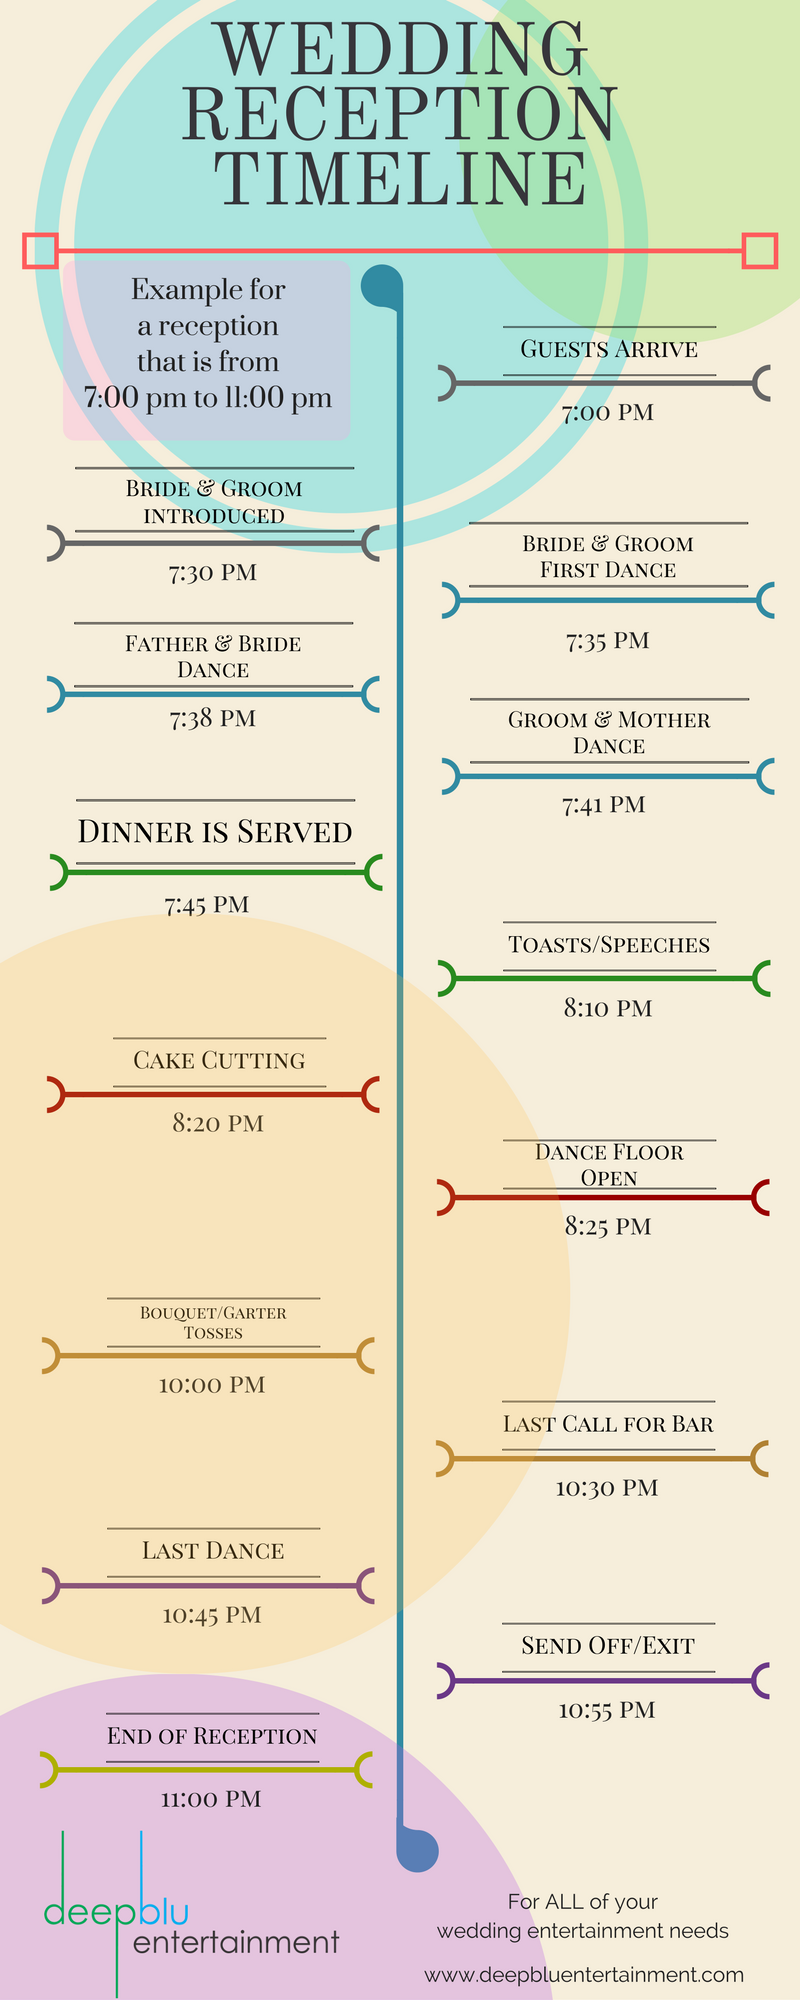 example wedding reception timeline this is a typical format for a 4